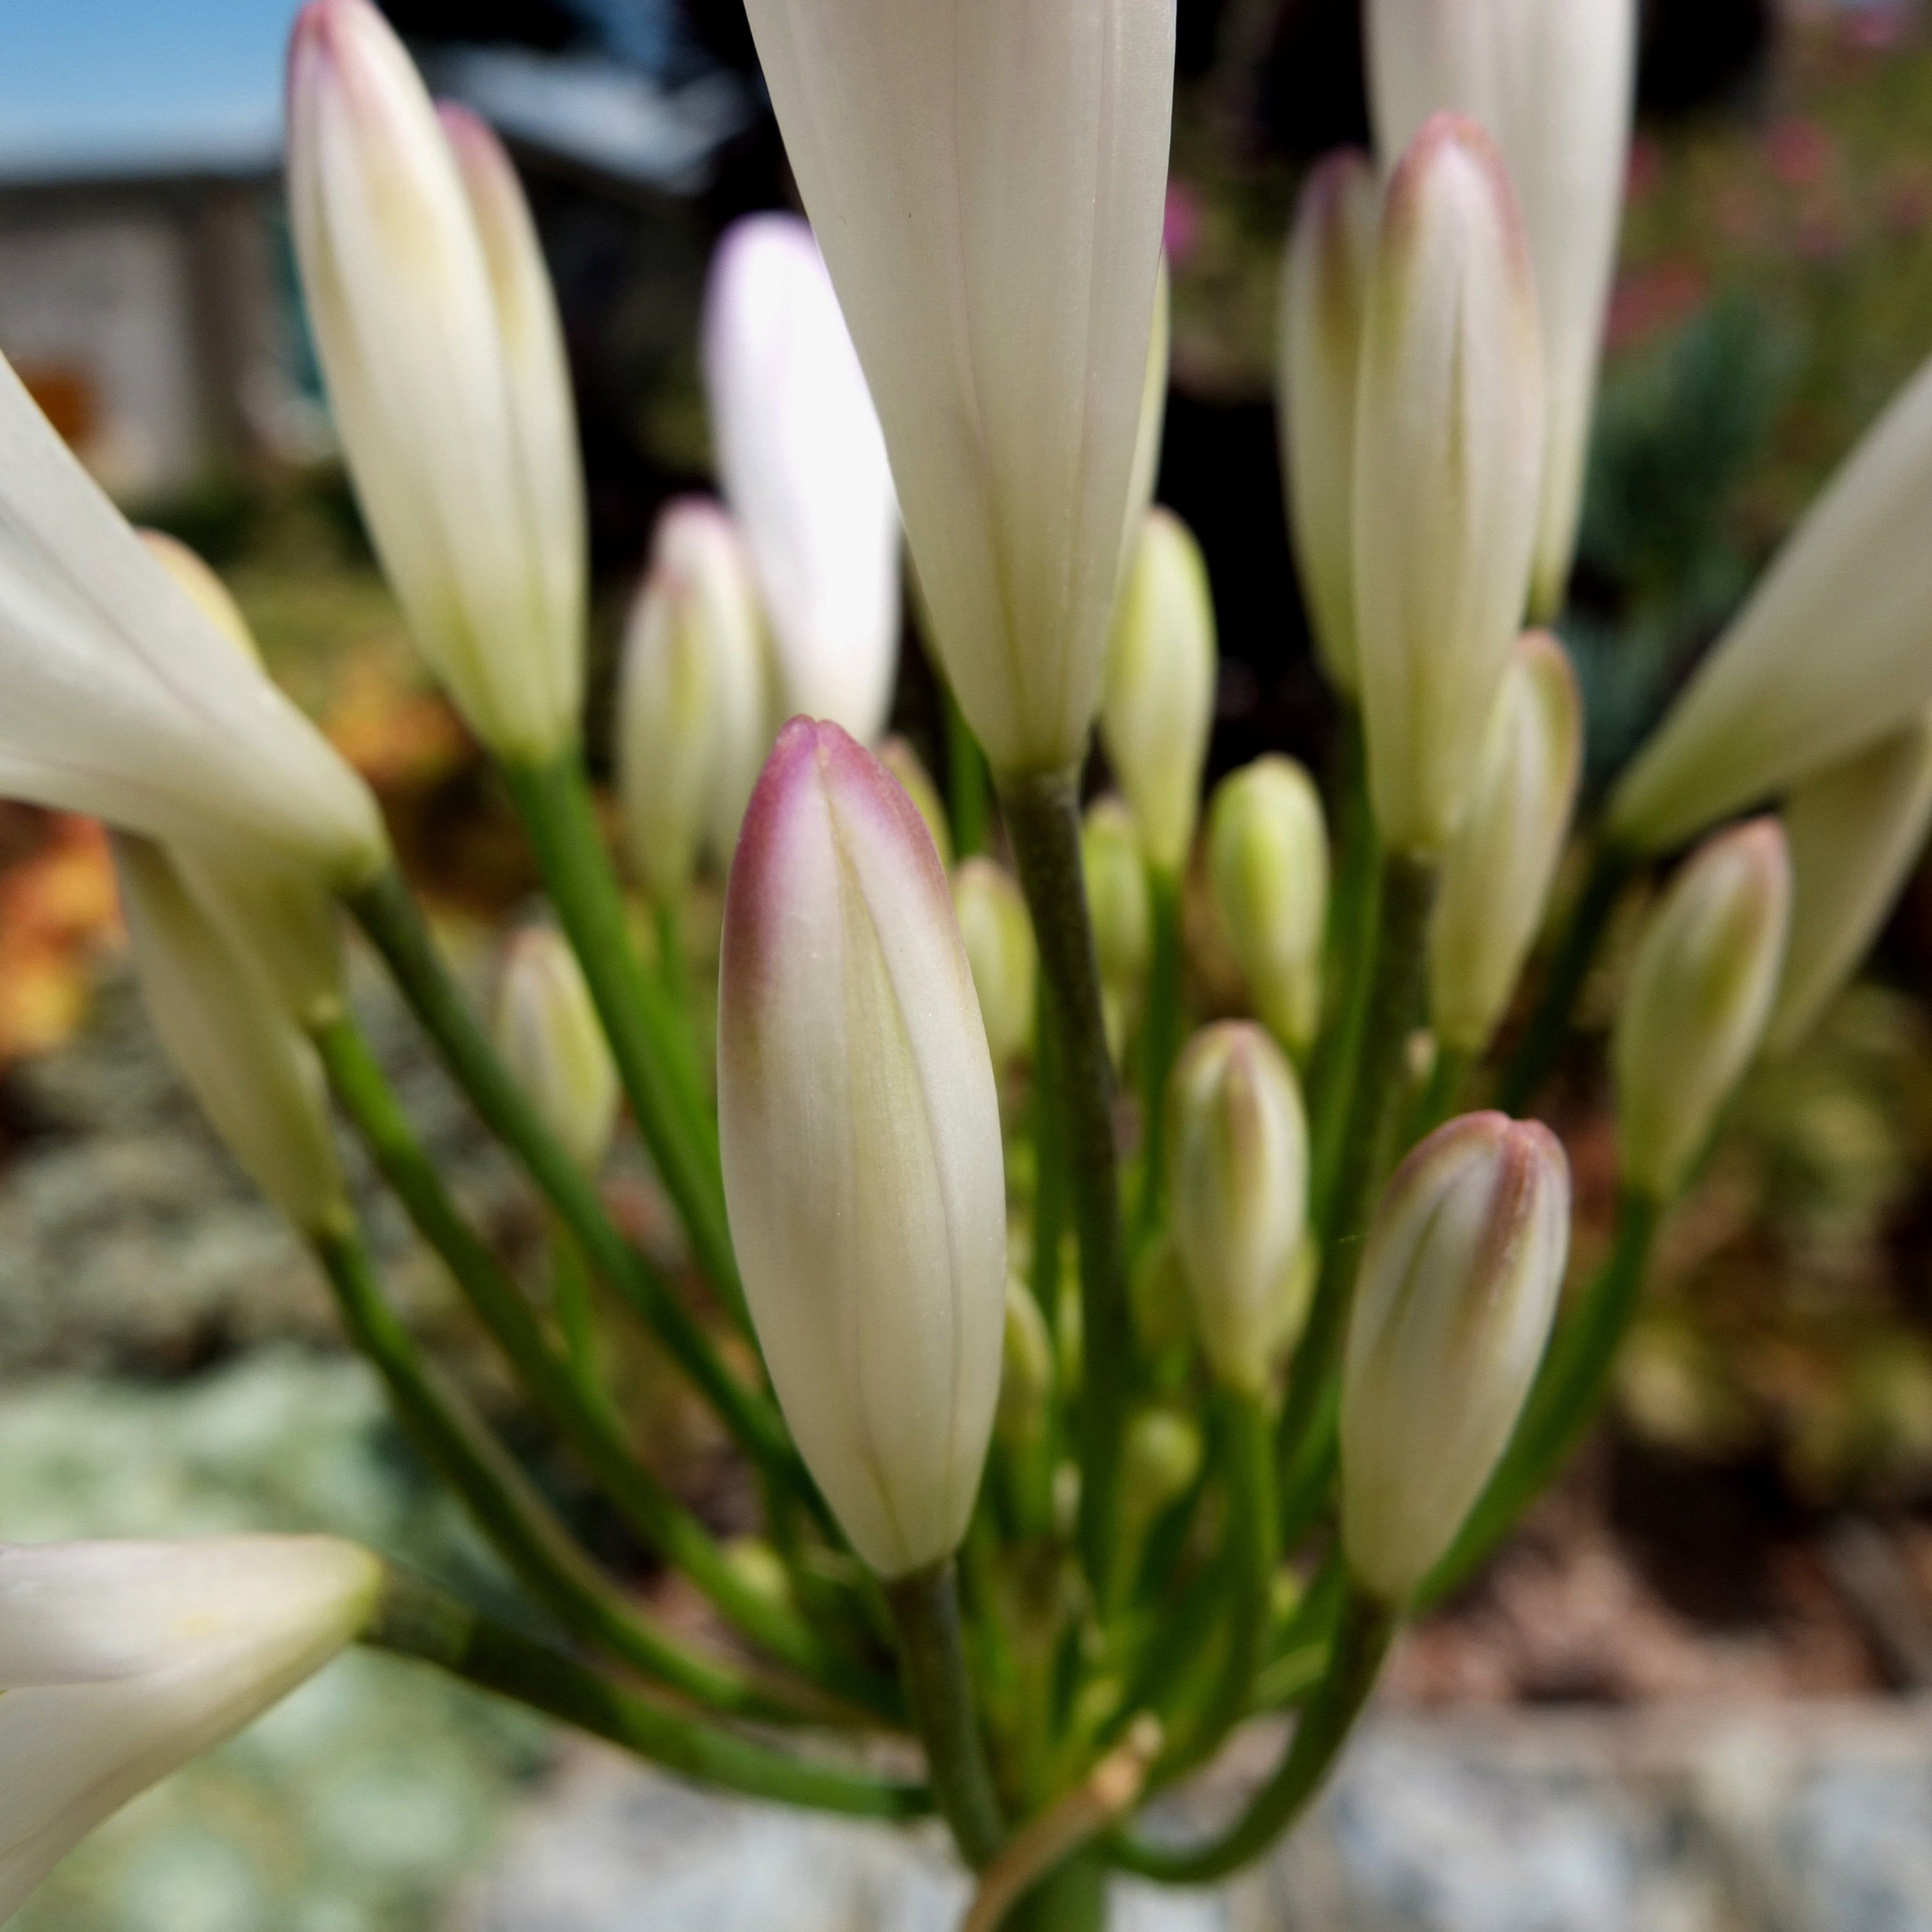 On Sale Agapanthus Strawberry Ice African Lily Garden Plant Hardy Plant Now 11 92 Gbp In 2020 Lily Garden Hardy Plants African Lily